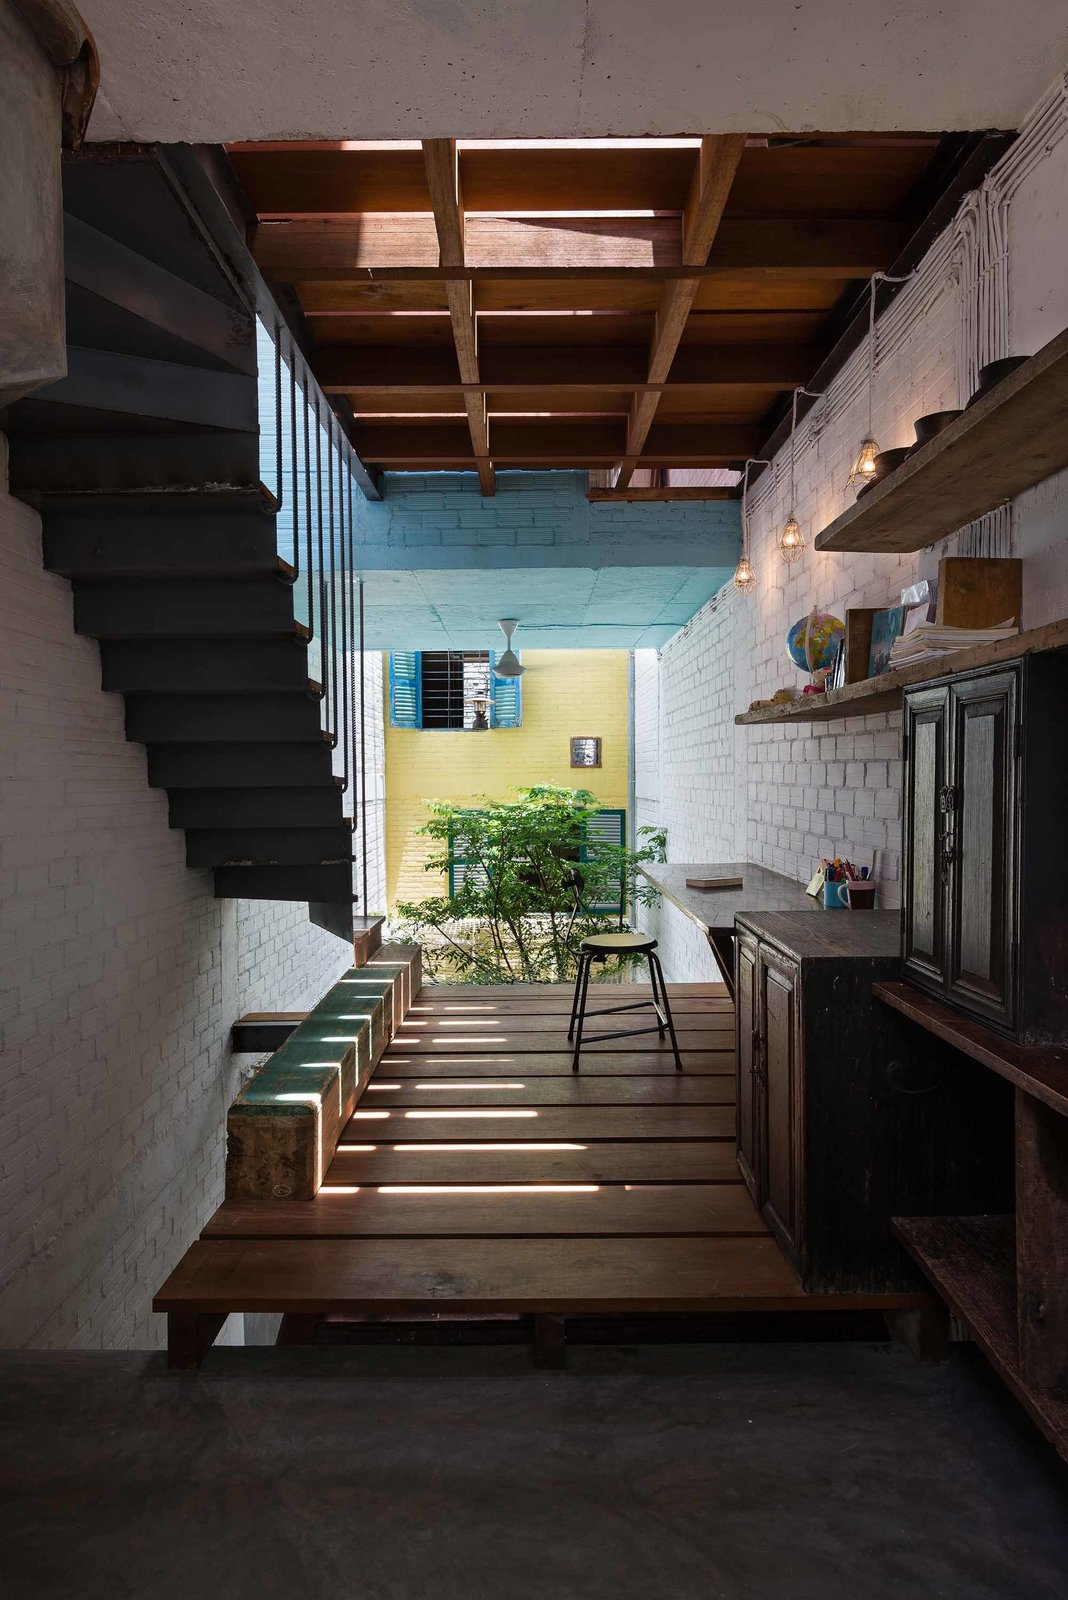 A rare interior hallway space is made and furnished almost entirely with reclaimed materials. Materials for doors, windows, and the slatted wooden floor were collected from demolished Saigon homes and customized to fit the residence.  Photo 7 of 10 in A Narrow Courtyard Joins a Unique Two-Family Home in Saigon